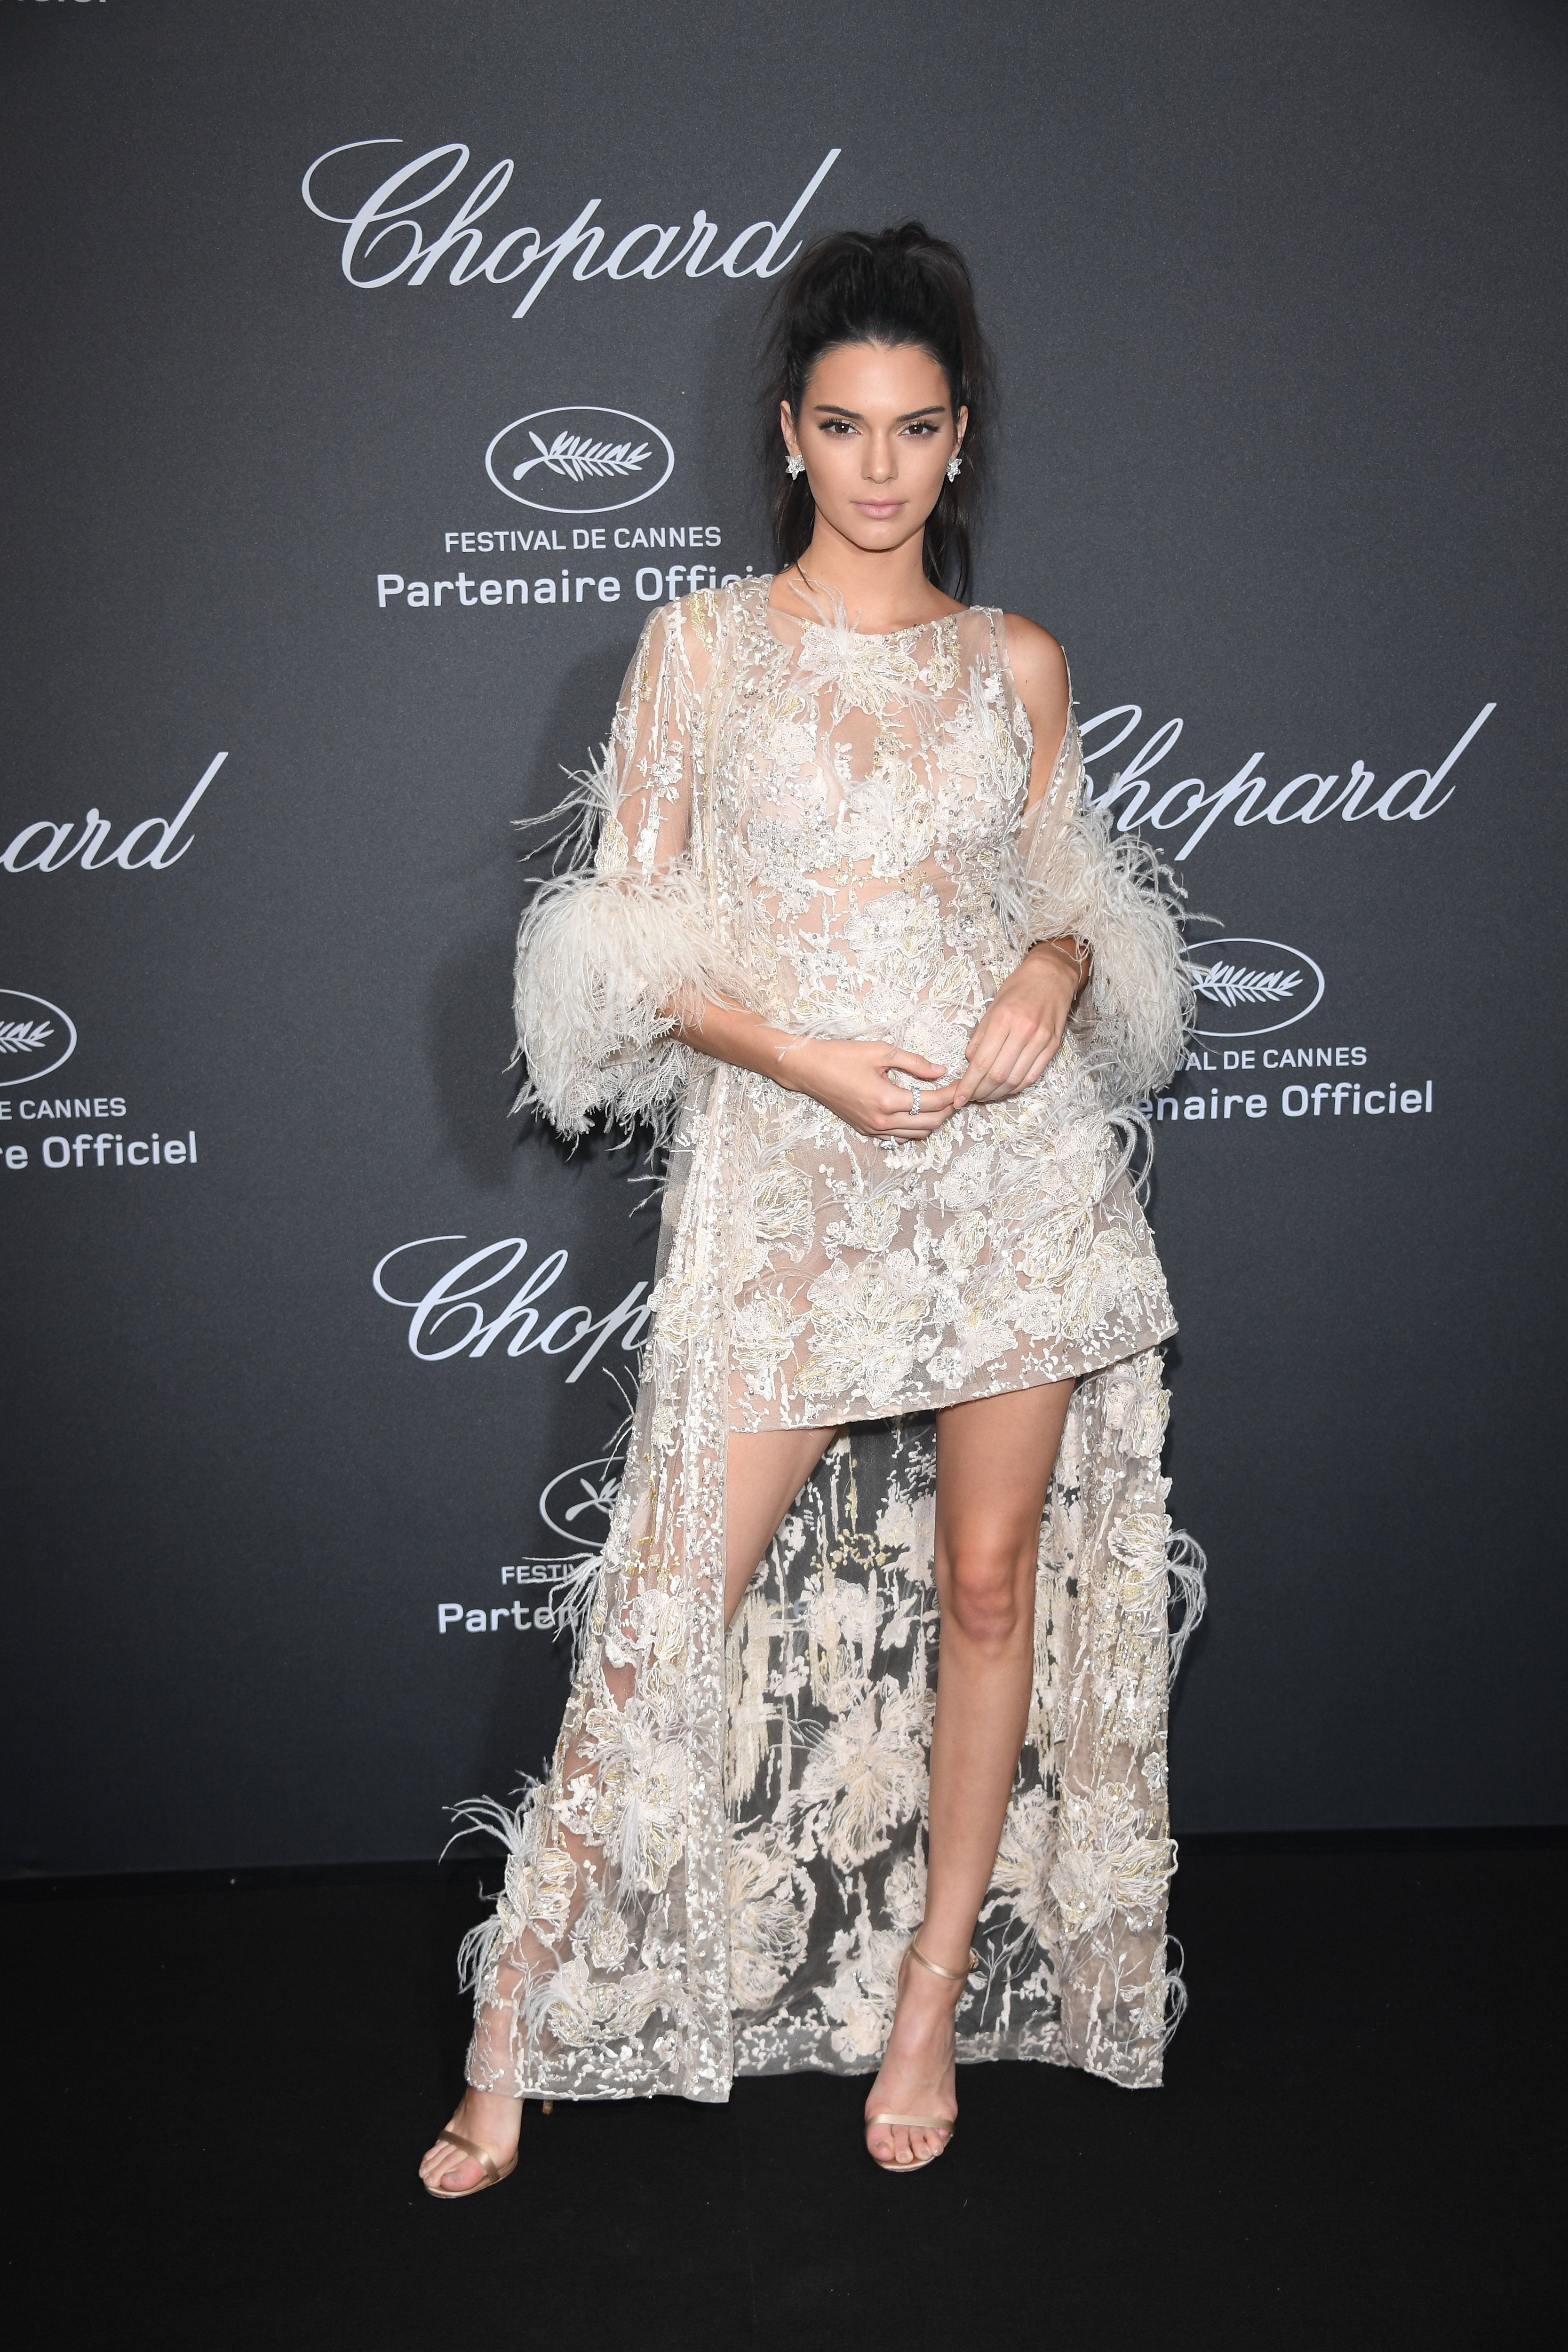 7077b12d745 Kendall Jenner's Most Naked Outfits - Kendall Jenner's Sexiest Dresses in  Pictures